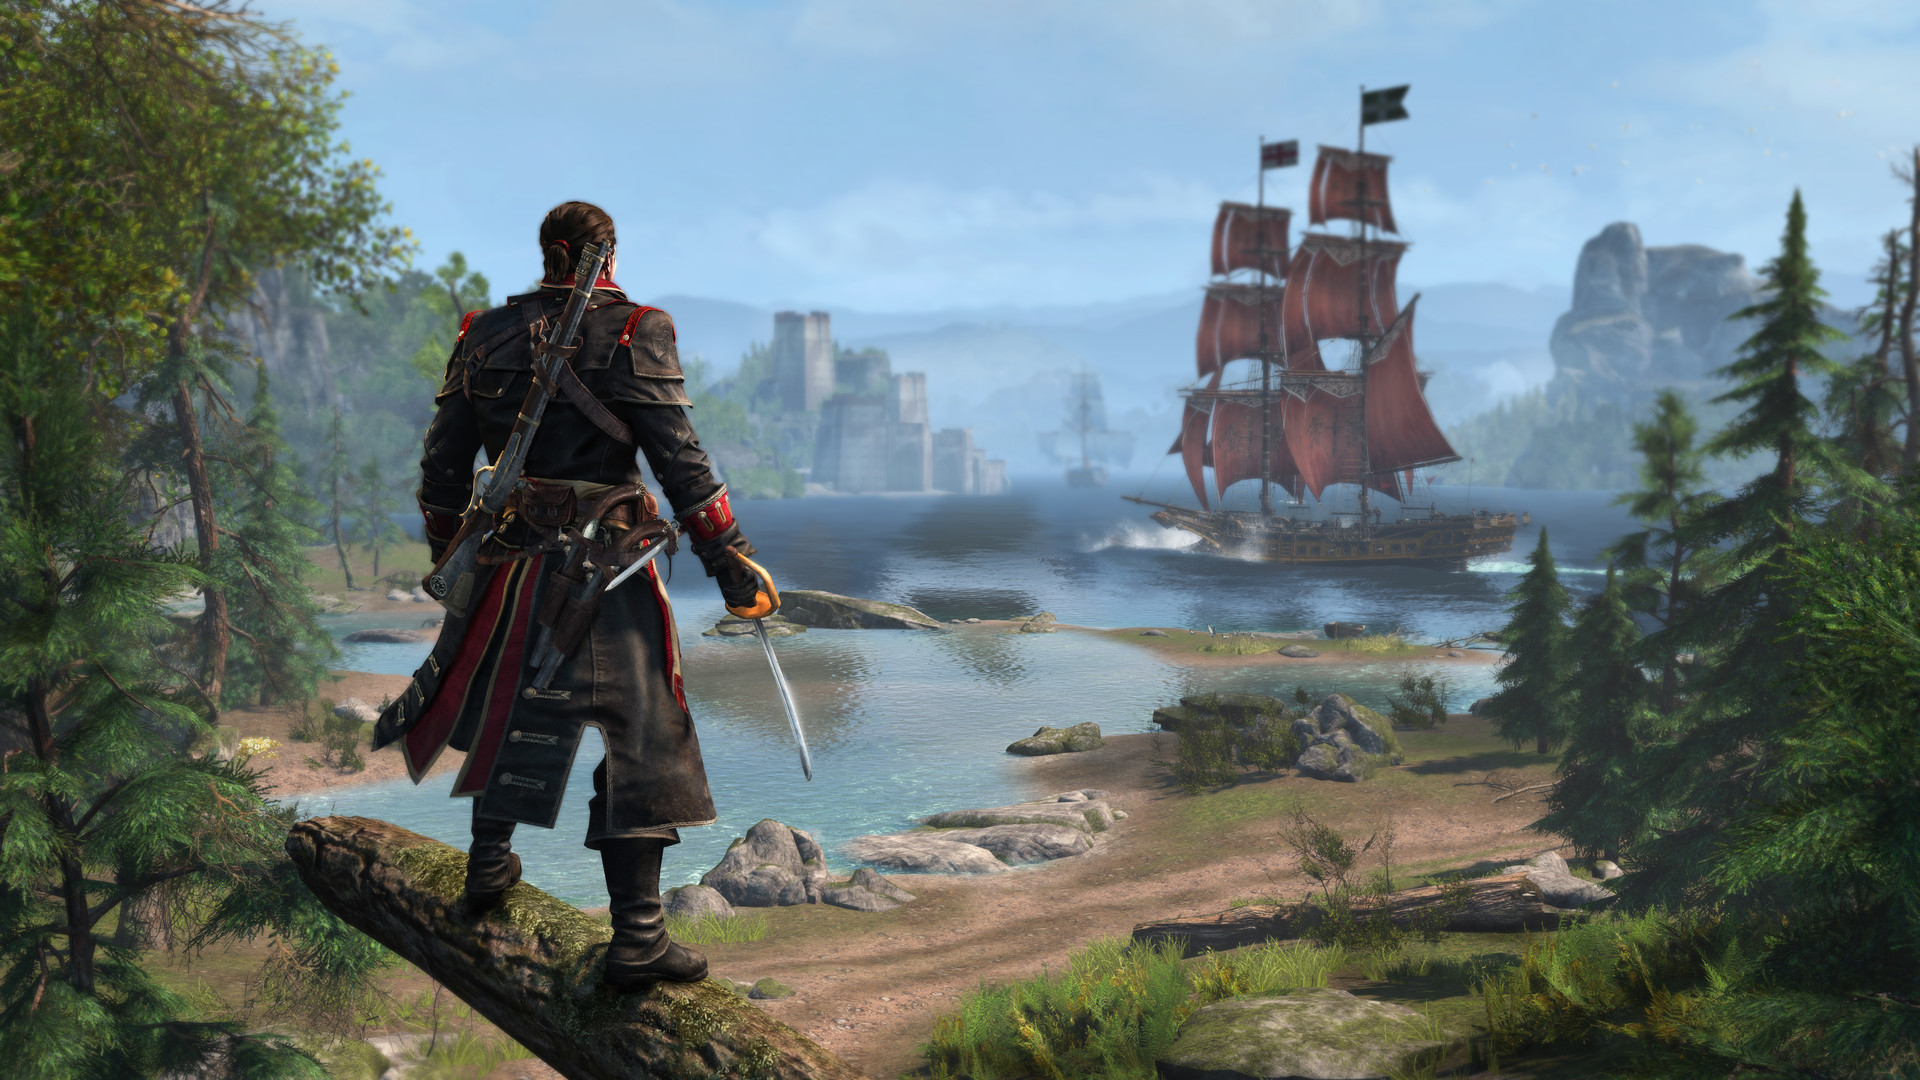 Link Tải Game Assassin's Creed Rogue Miễn Phí